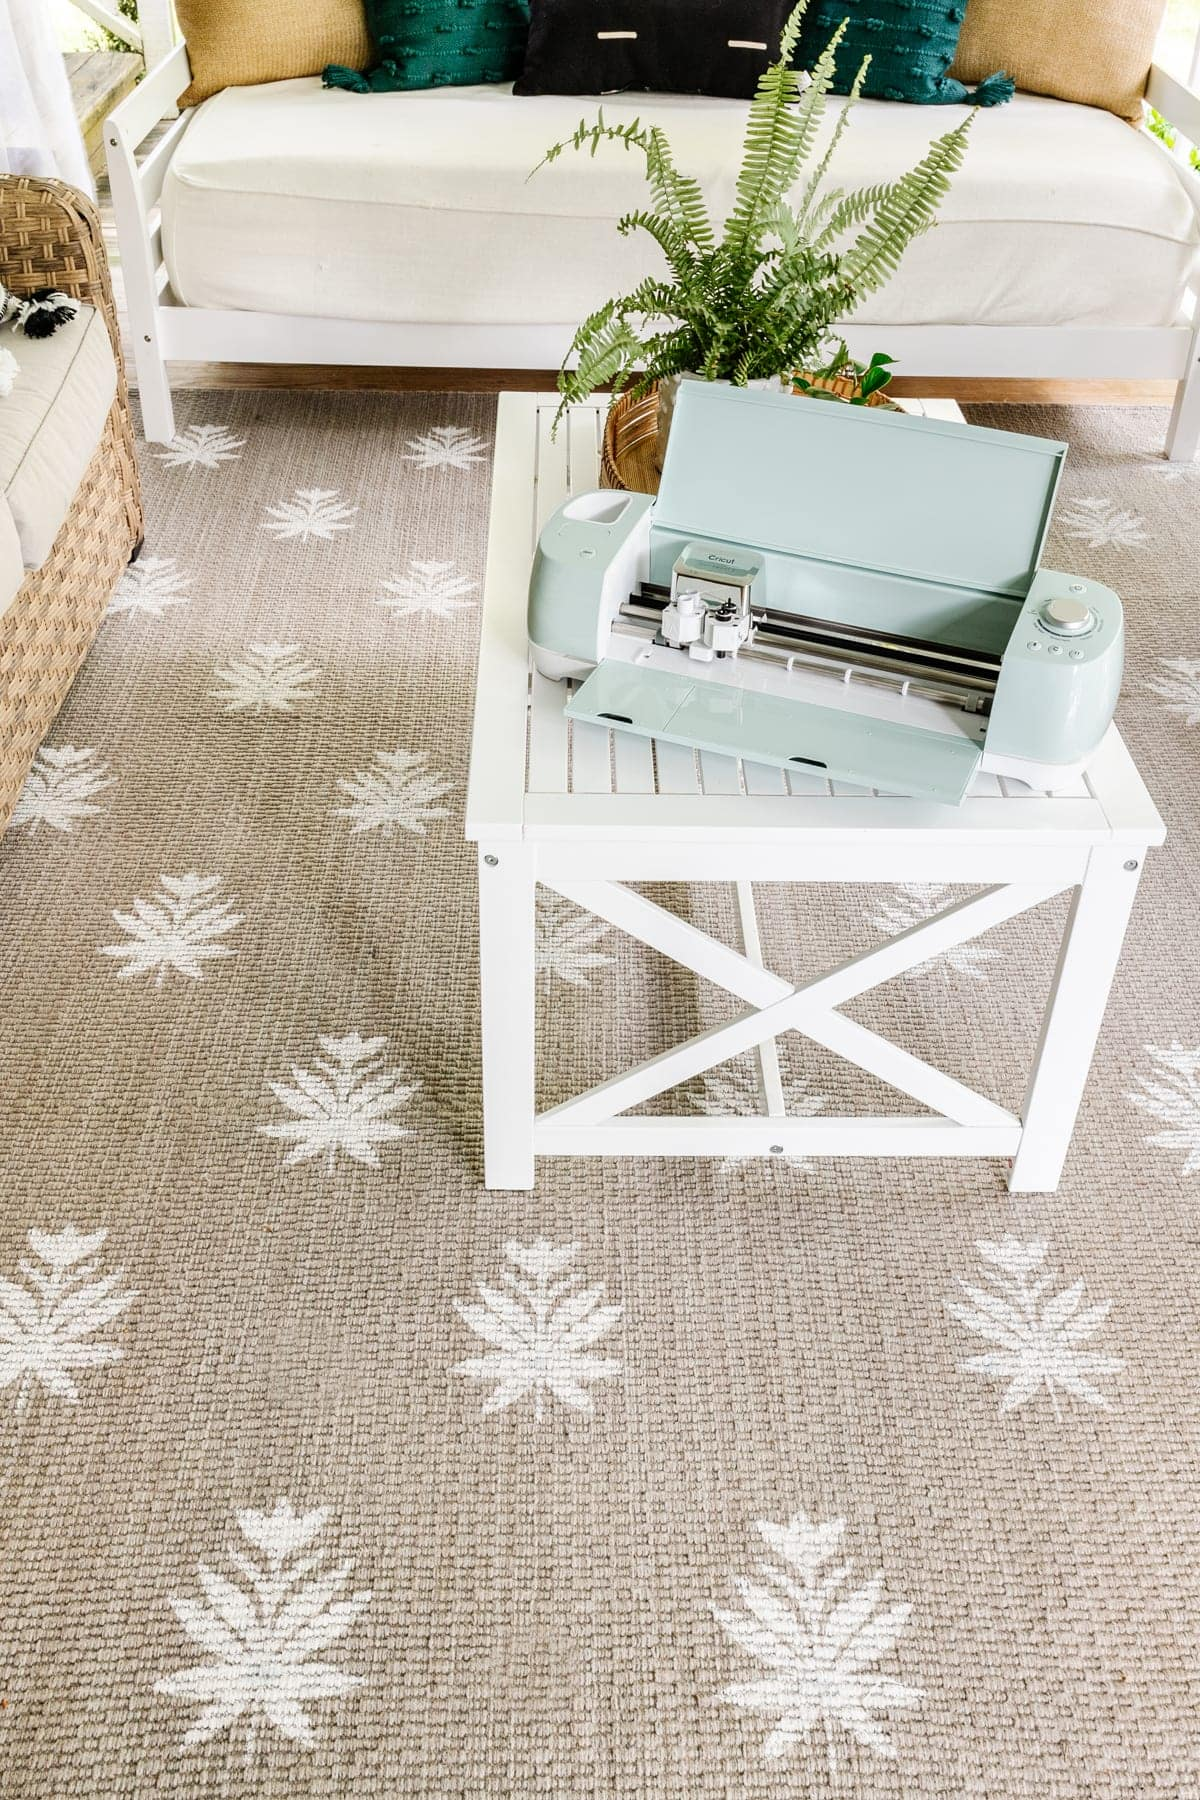 DIY outdoor rug with a floral block pattern using a stencil made from a Cricut machine